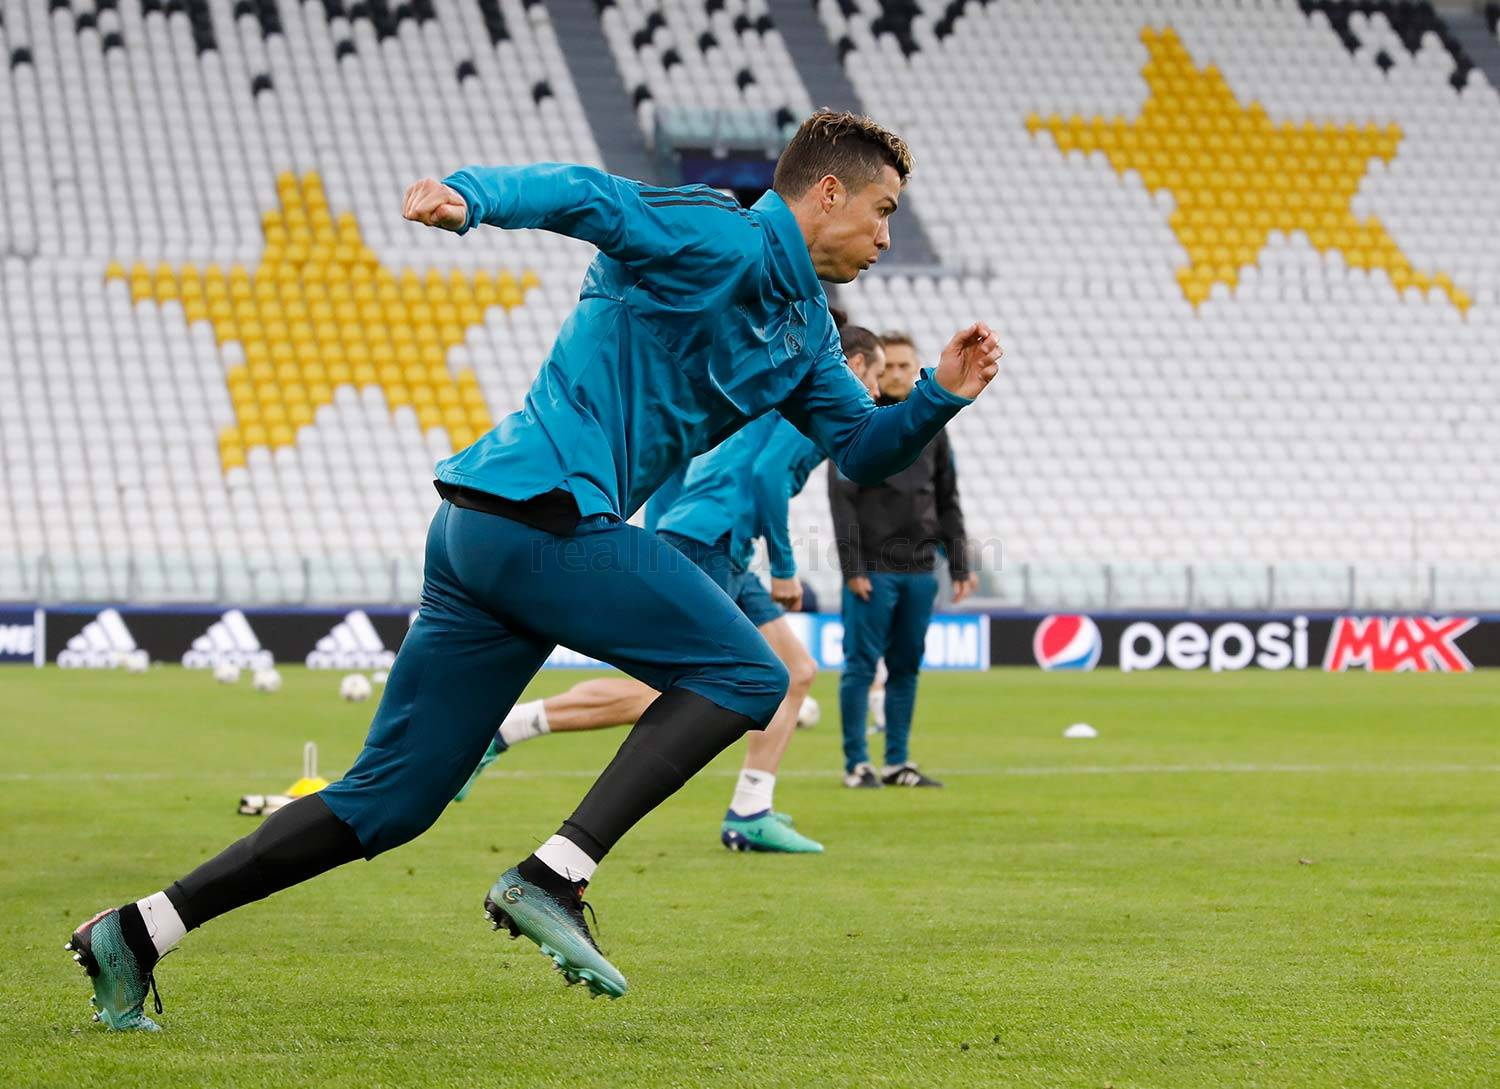 Real Madrid - Entrenamiento del Real Madrid - 02-04-2018